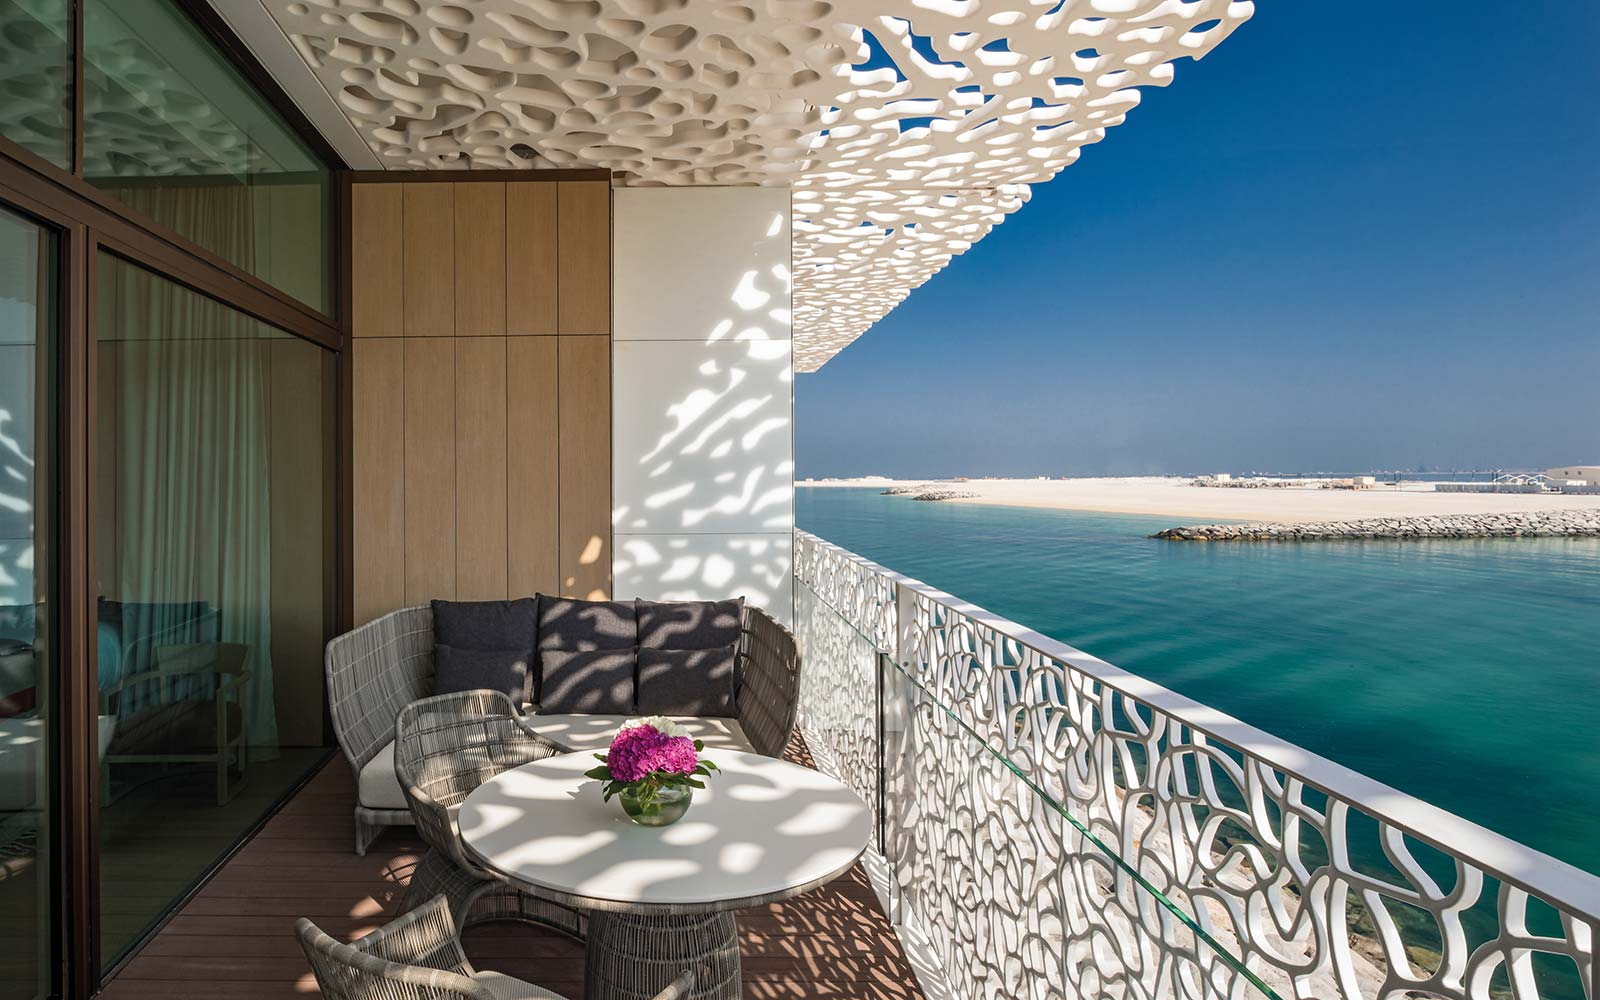 The Best Luxury Hotels That Opened Around the World This Year